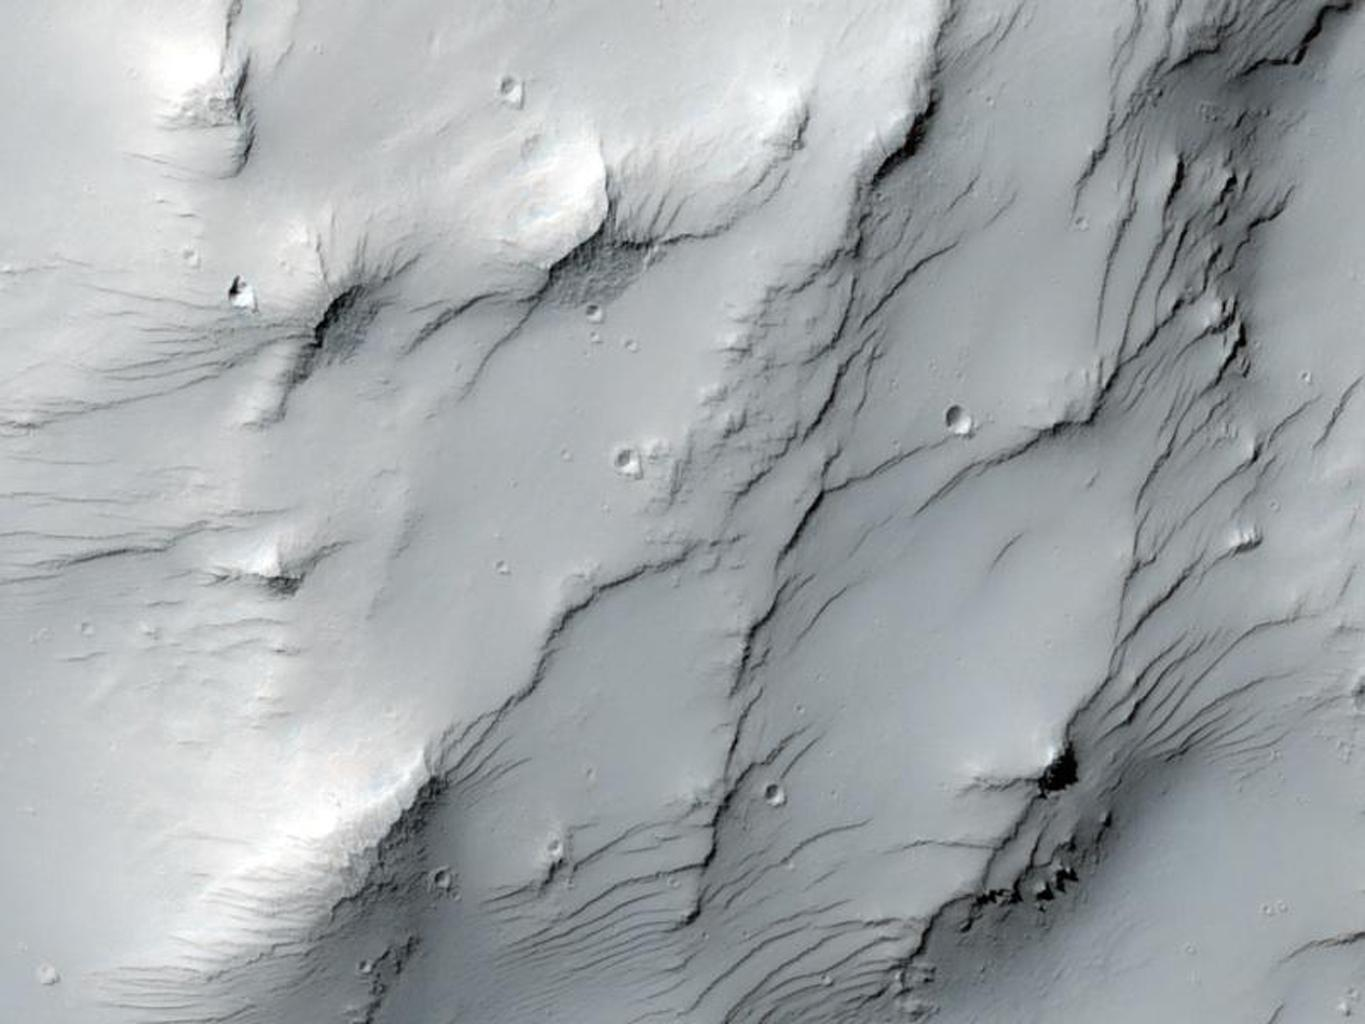 This image captured by NASA's Mars Reconnaissance Orbiter covers some high-standing topography just outside the rim of an impact crater about 30 kilometers (19 miles) in diameter near a Martian hill named Zephyria Tholus.